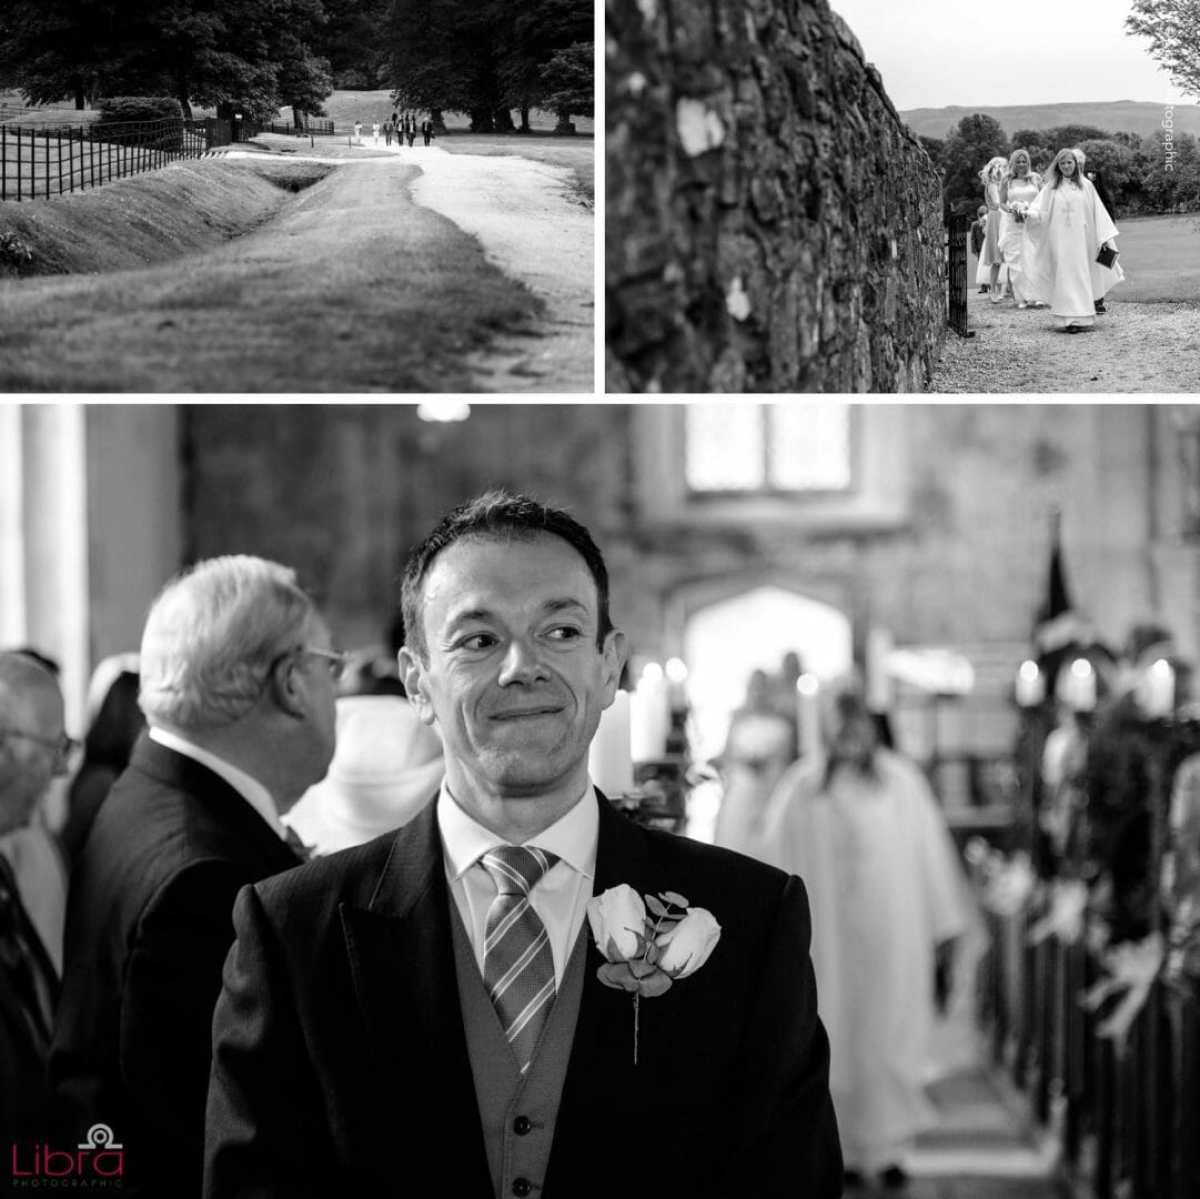 Groom waits for the bride in church